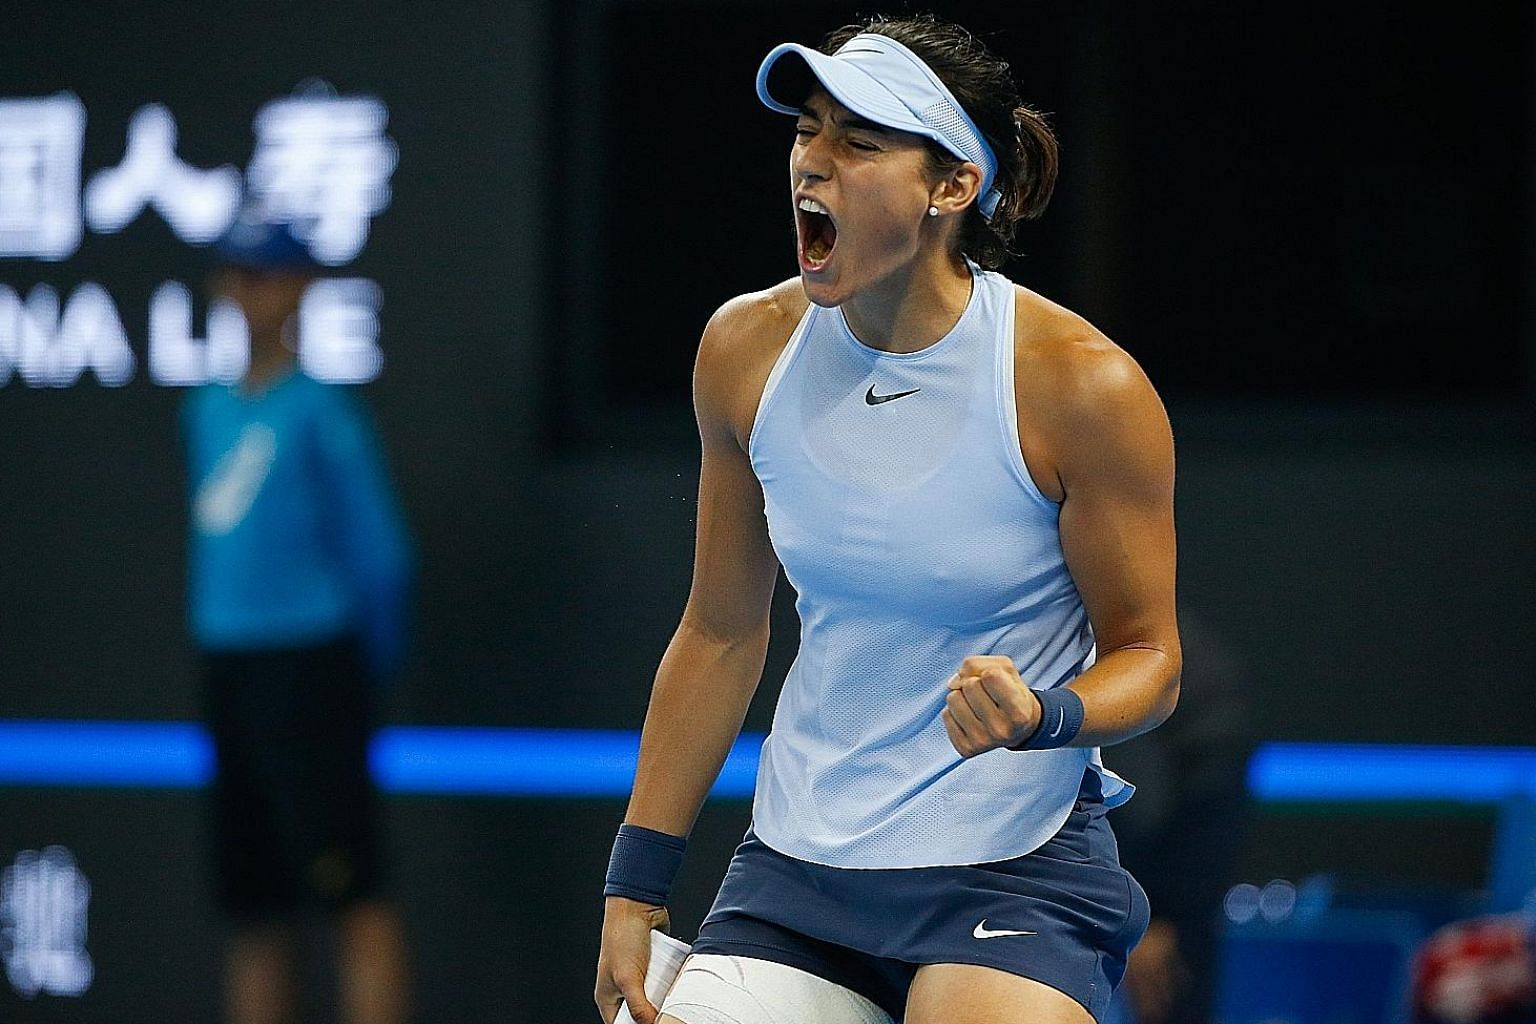 Caroline Garcia is all pumped up during her China Open final win over new world No. 1 Simona Halep in Beijing. She has broken into the top 10 and also edged ahead of Johanna Konta in the Race to Singapore but has to play former No. 1 Maria Sharapova